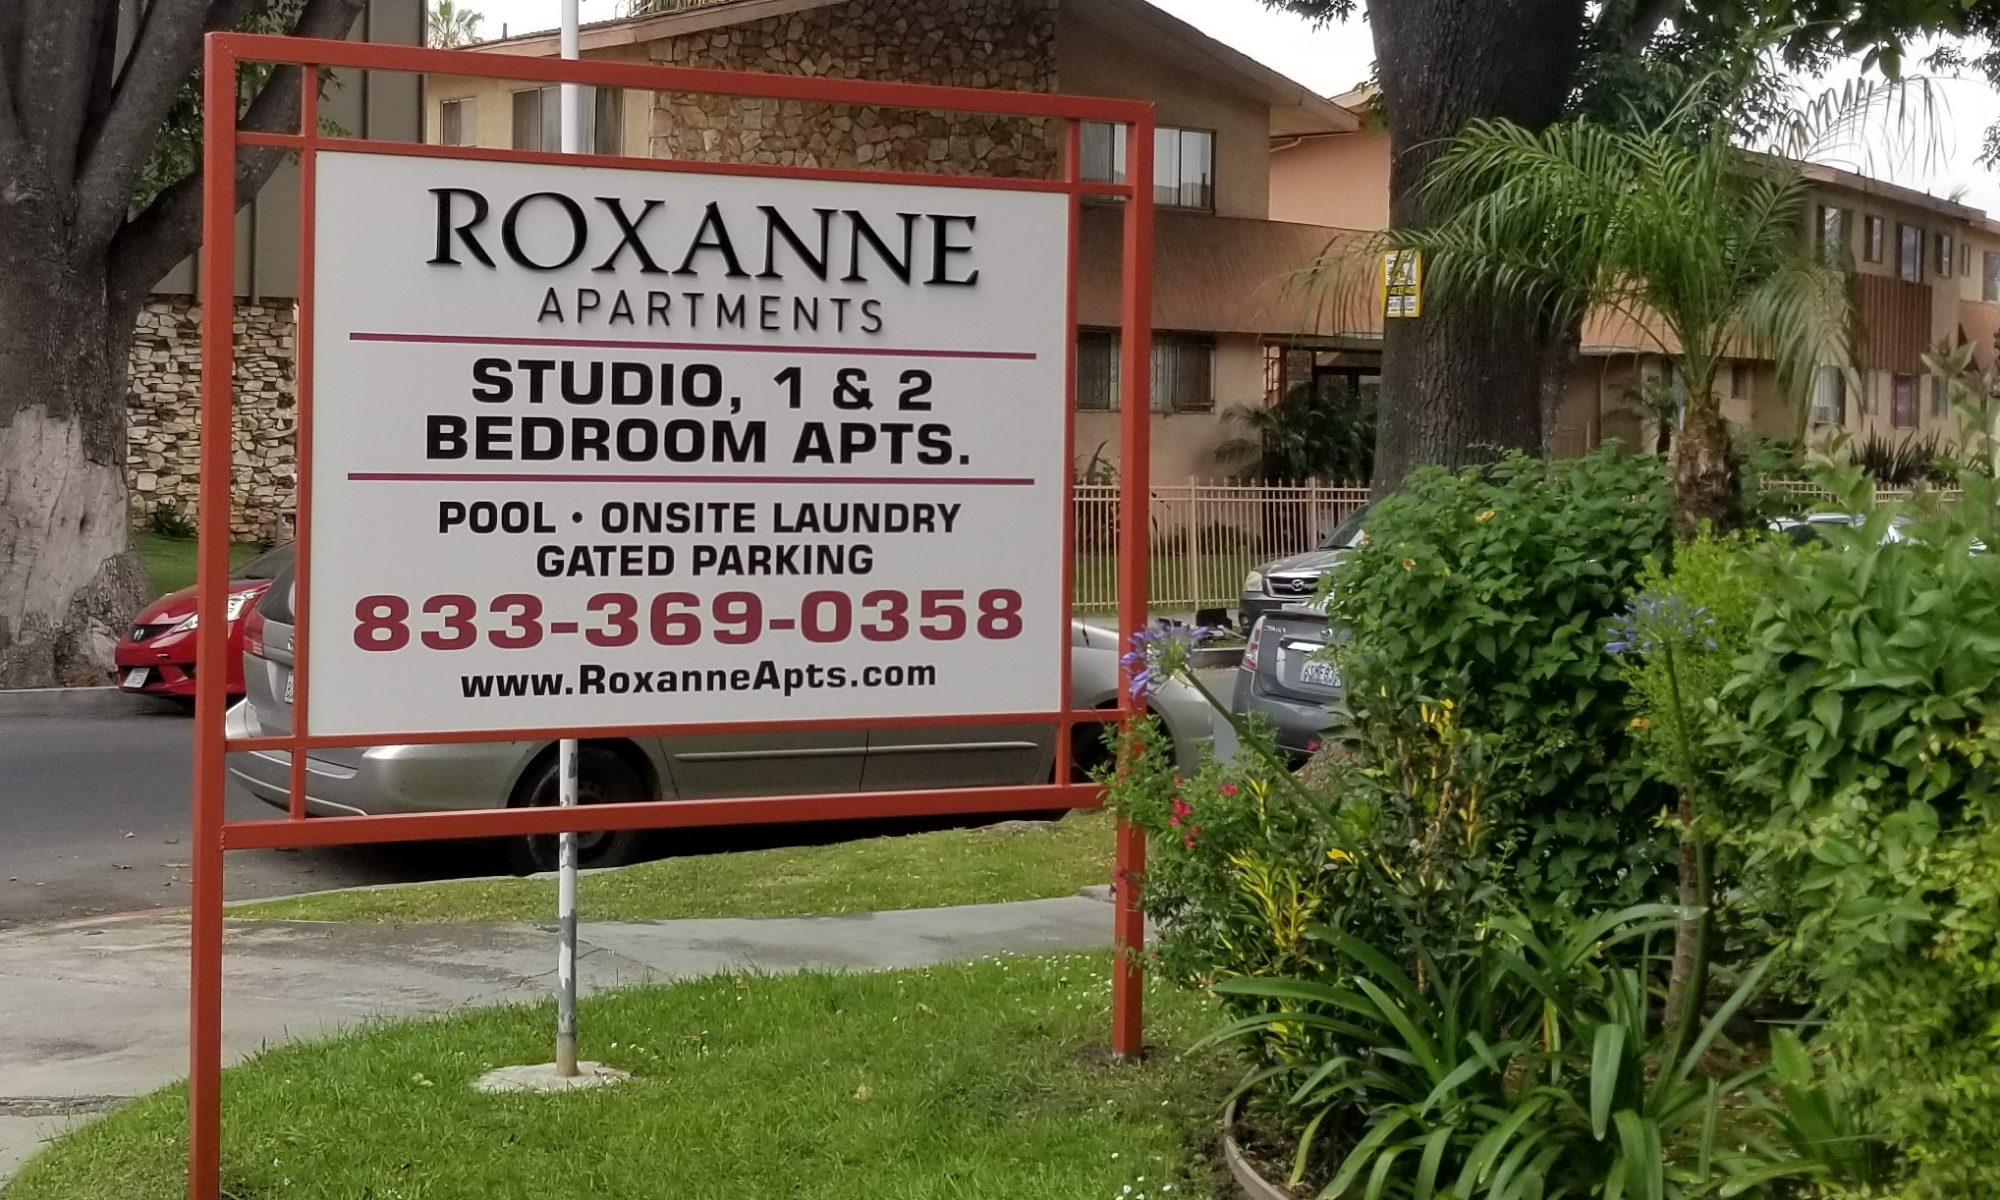 Our apartment post and panel sign for Roxanne Apartments. With this, the Los Angeles property will be even more visible. It also represents the community!